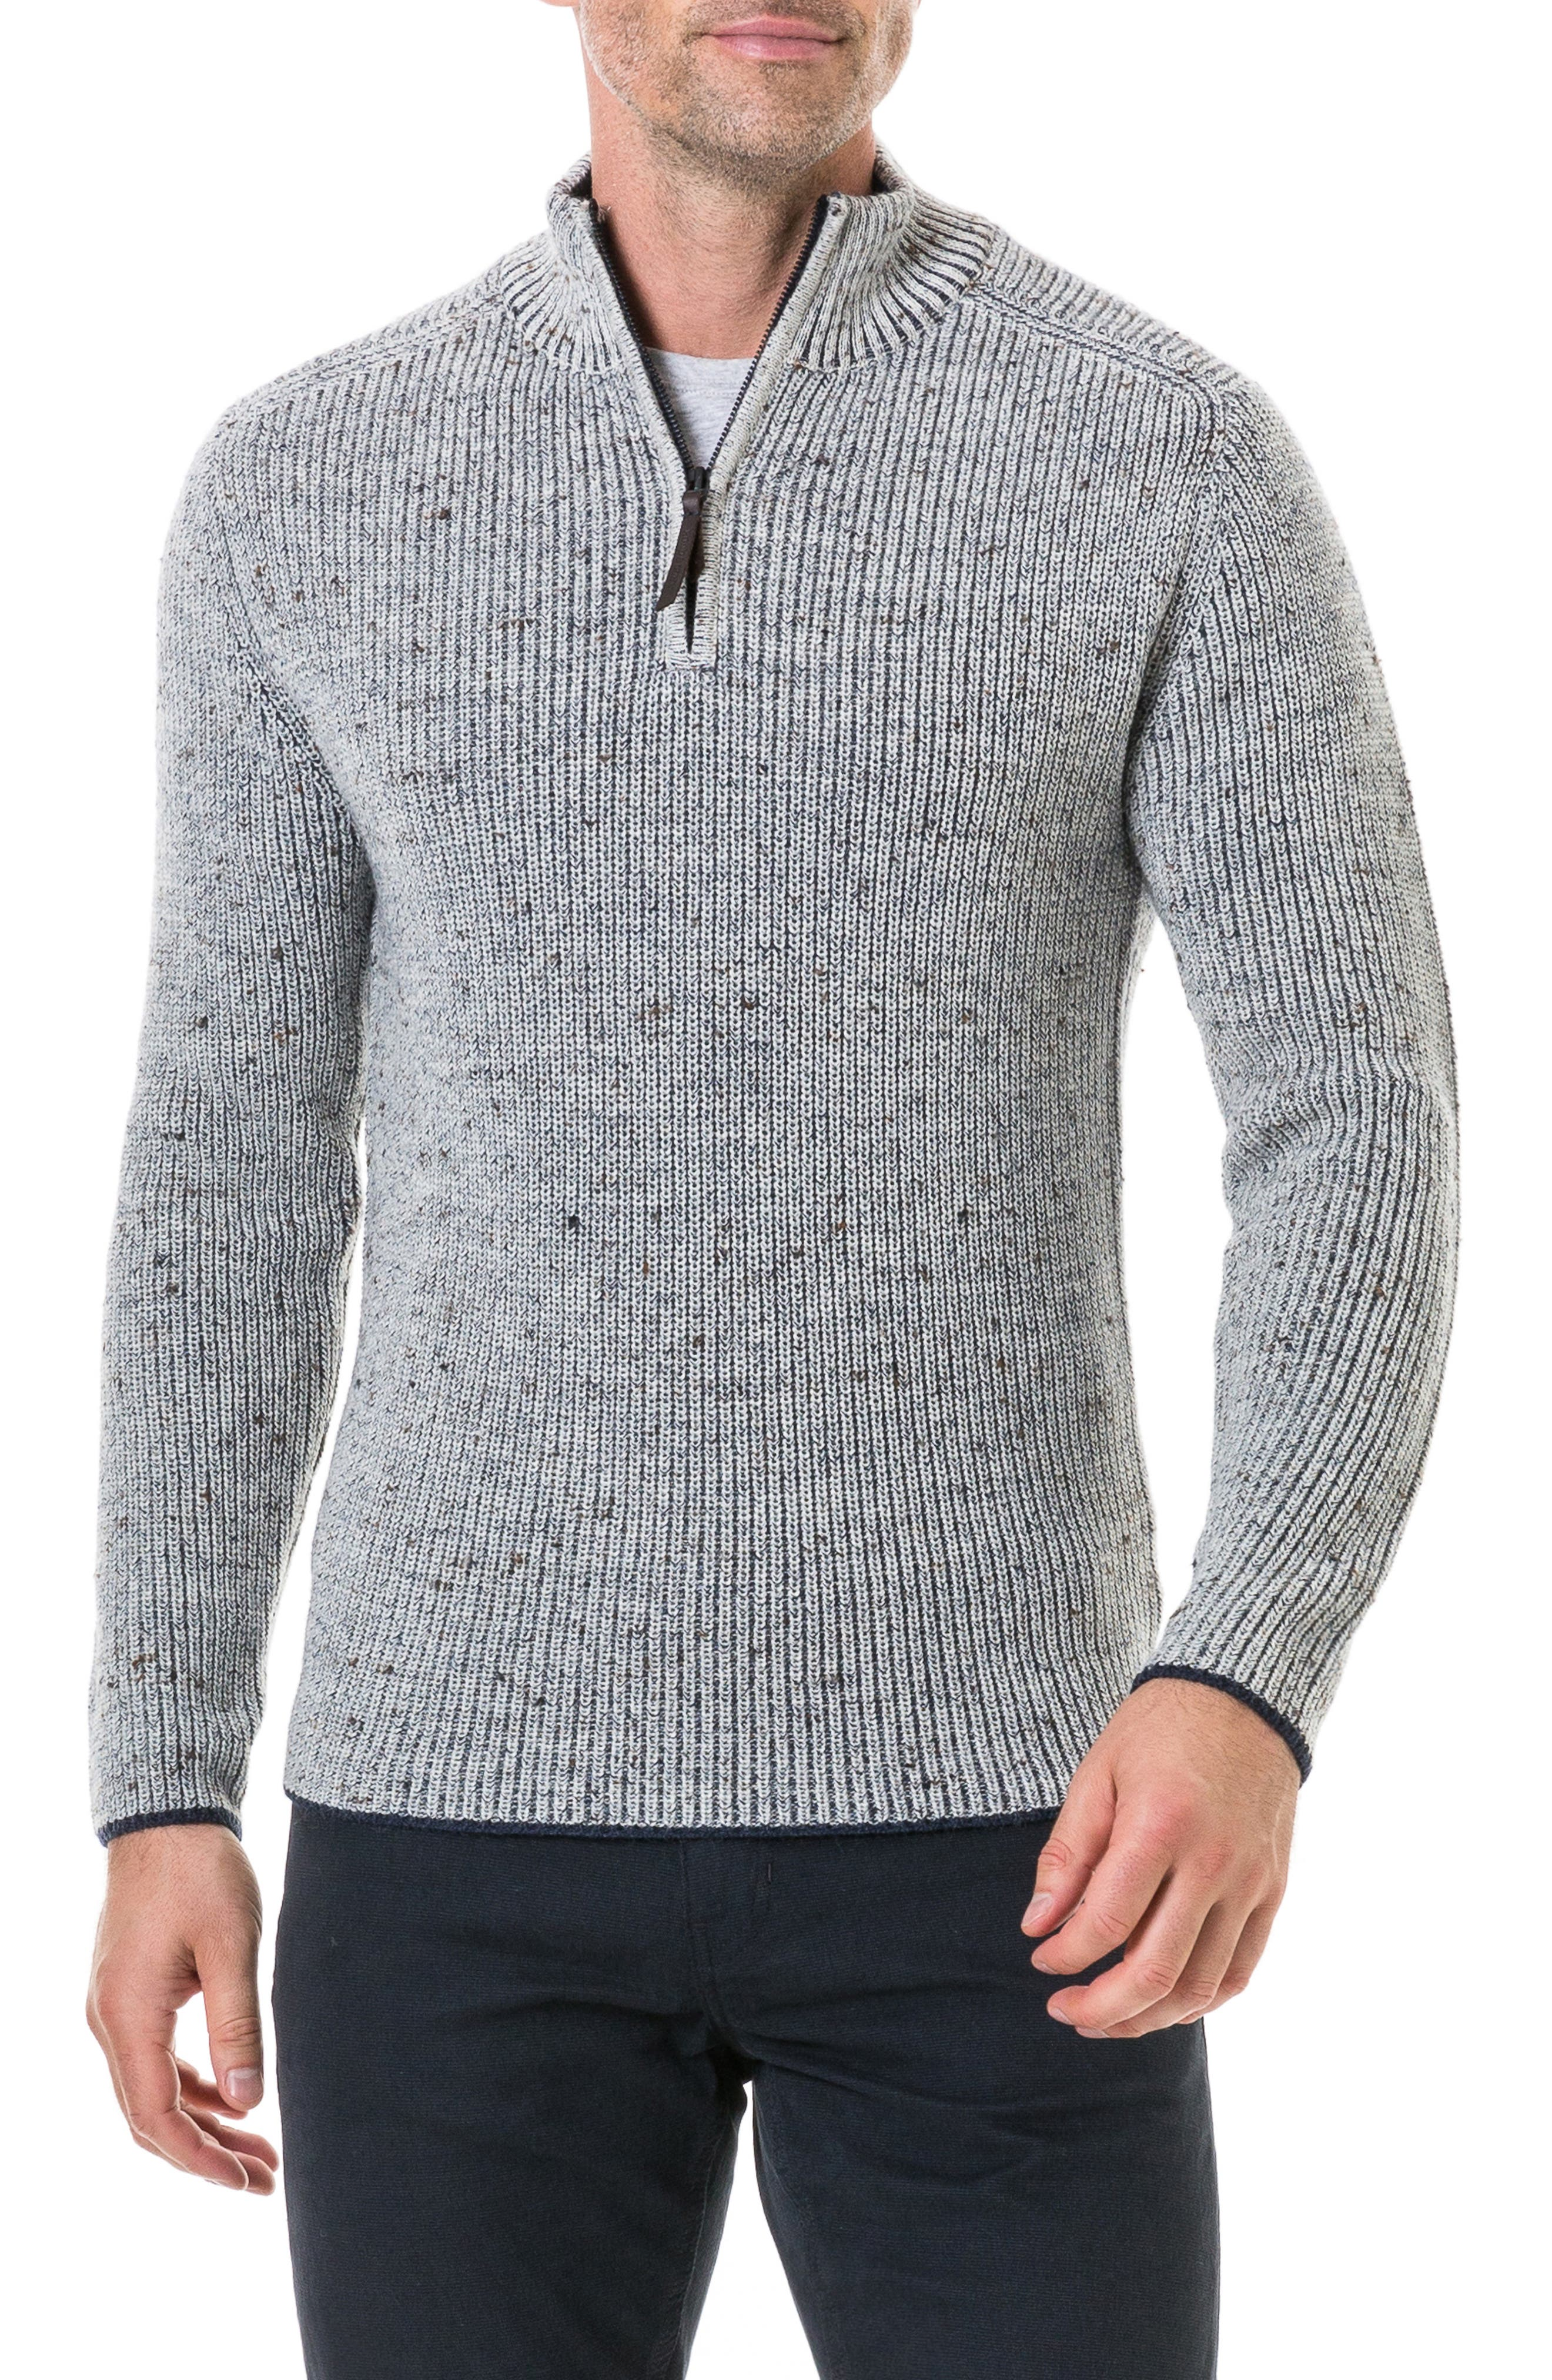 Slope Hill Wool Sweater,                             Main thumbnail 1, color,                             OATMEAL